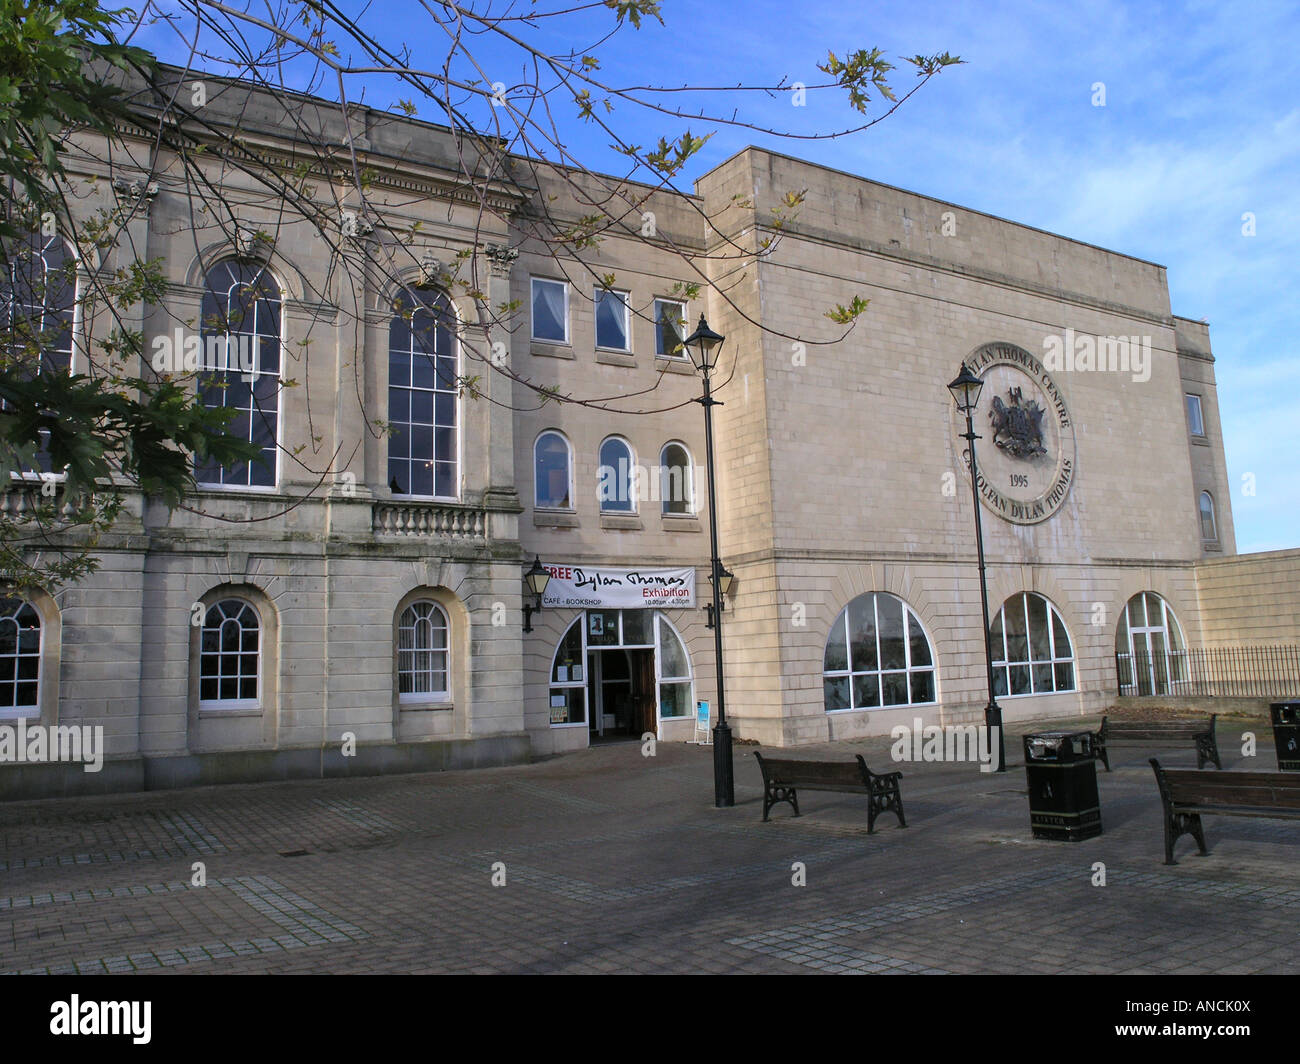 The Dylan Thomas Centre is an arts centre located in Swansea, Wales. Stock Photo